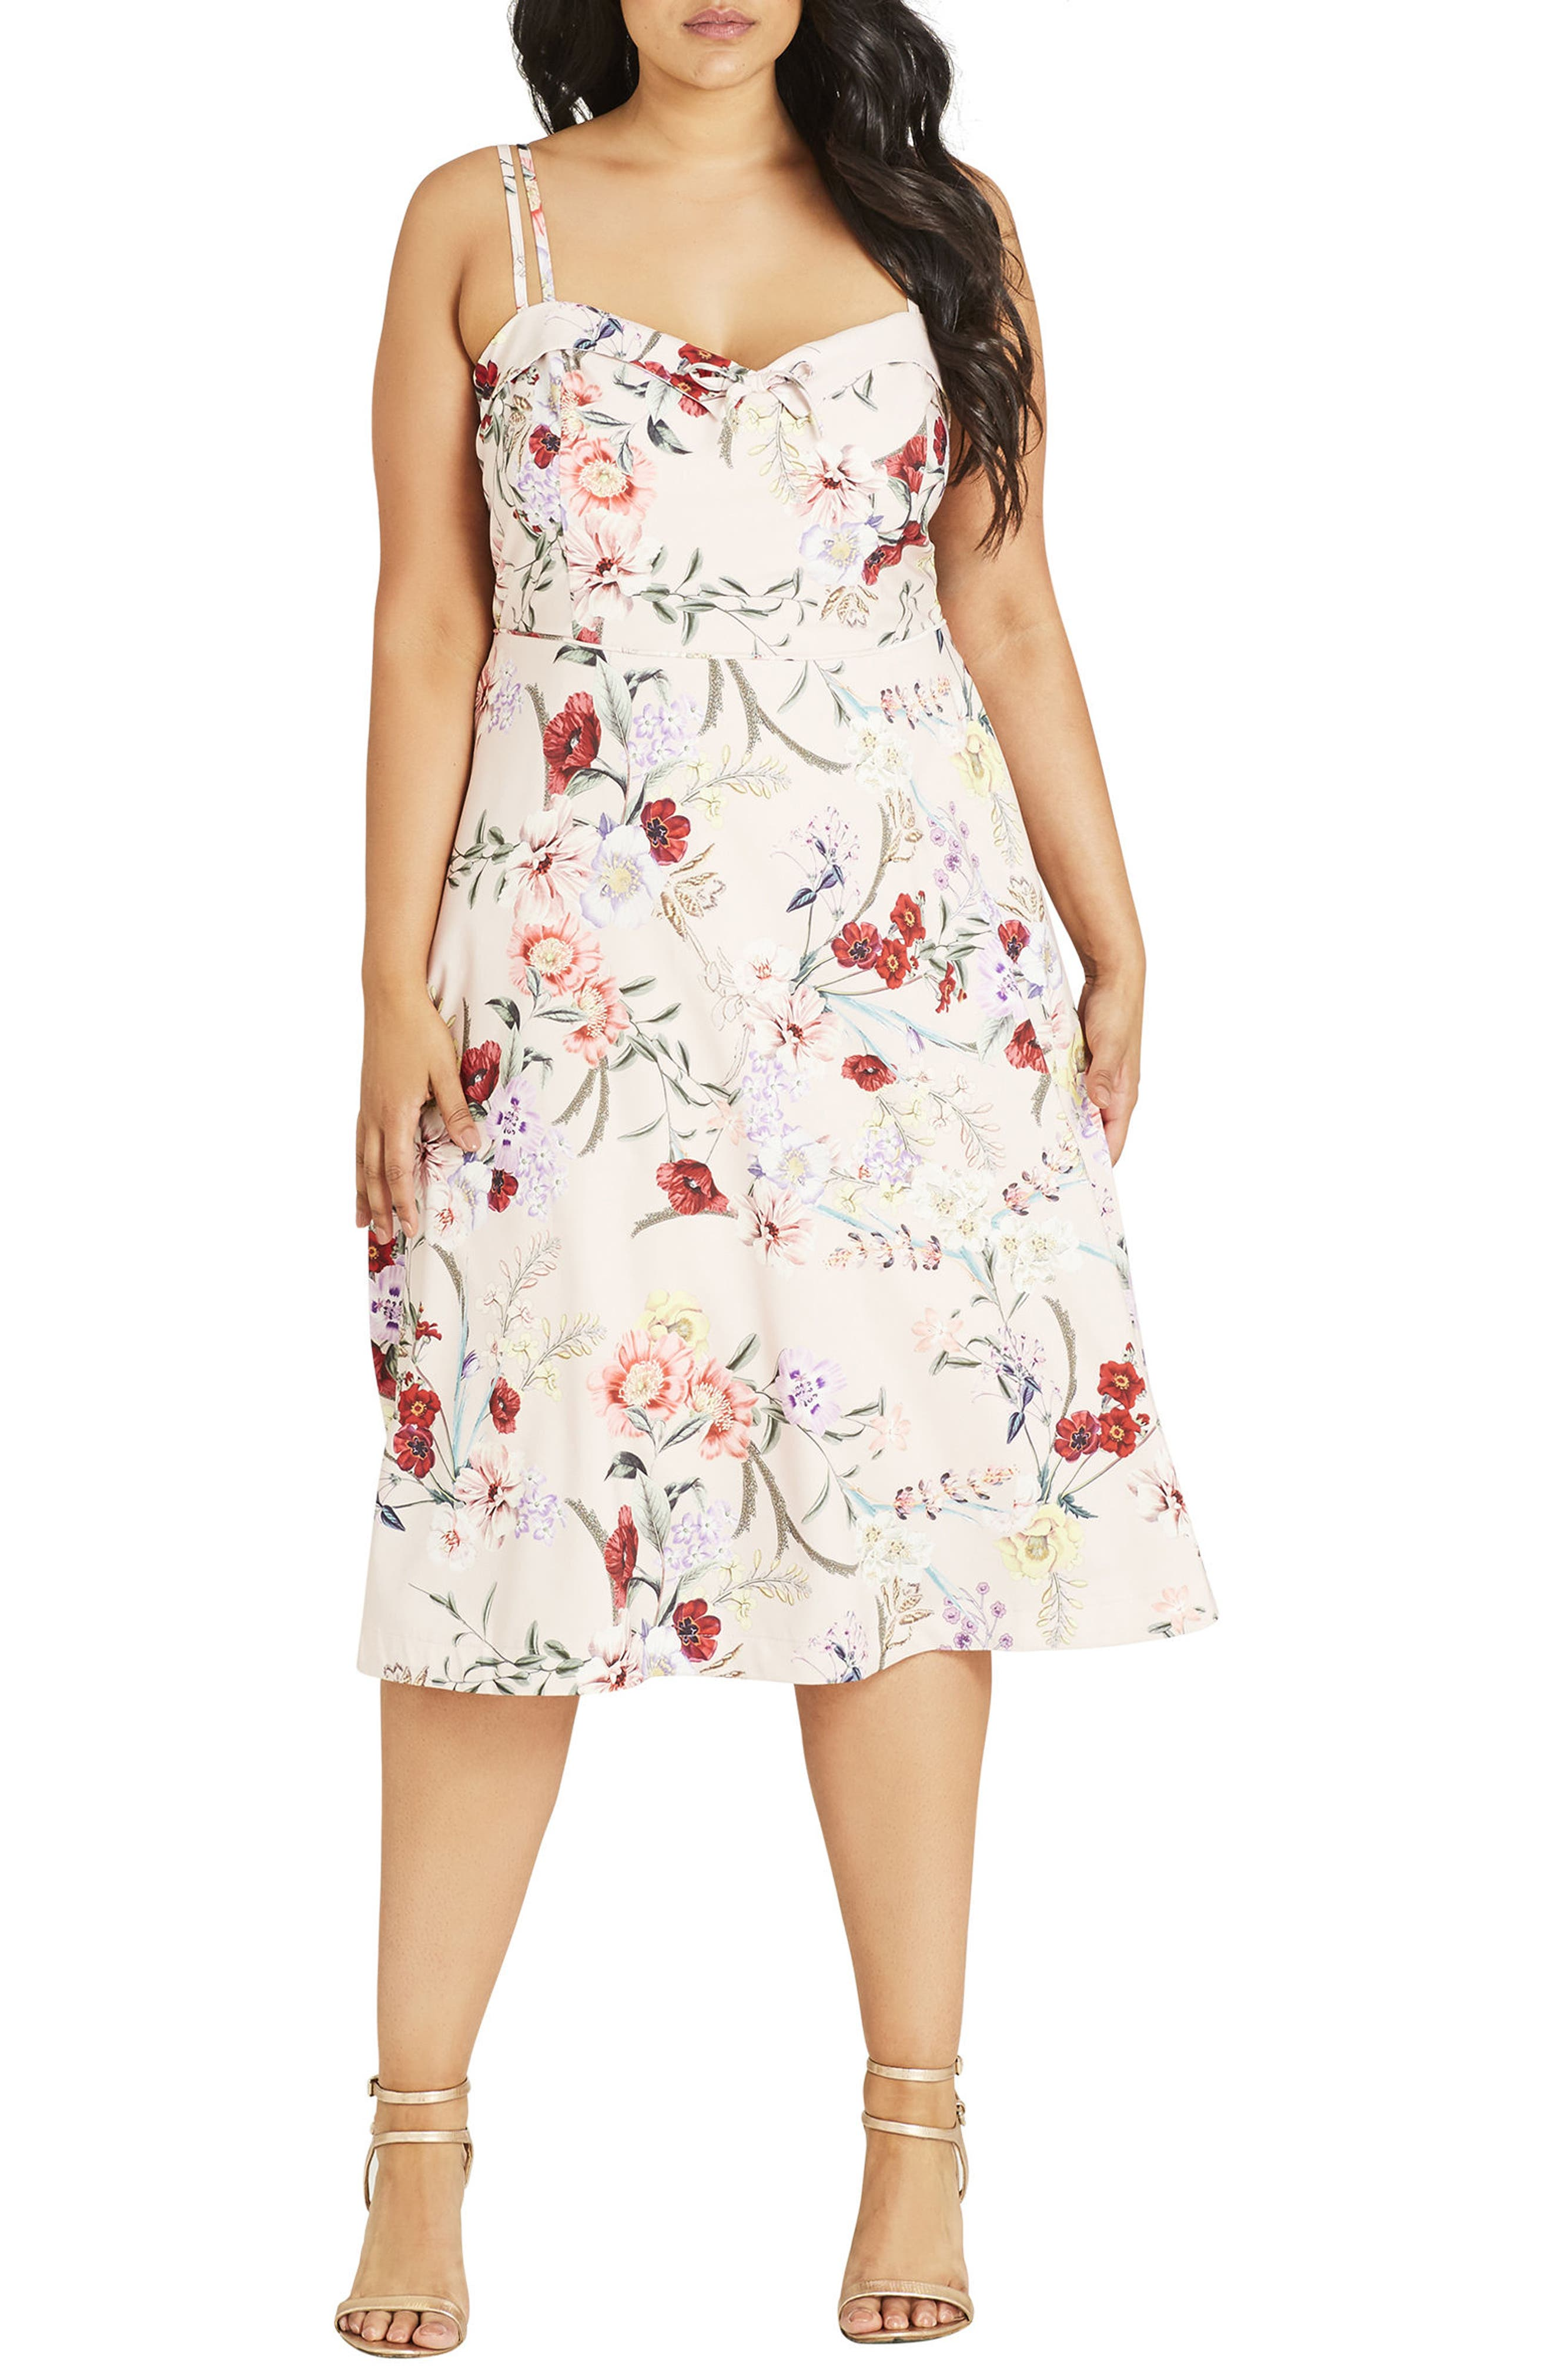 Alternate Image 1 Selected - City Chic Daytime Diva Fit & Flare Dress (Plus Size)